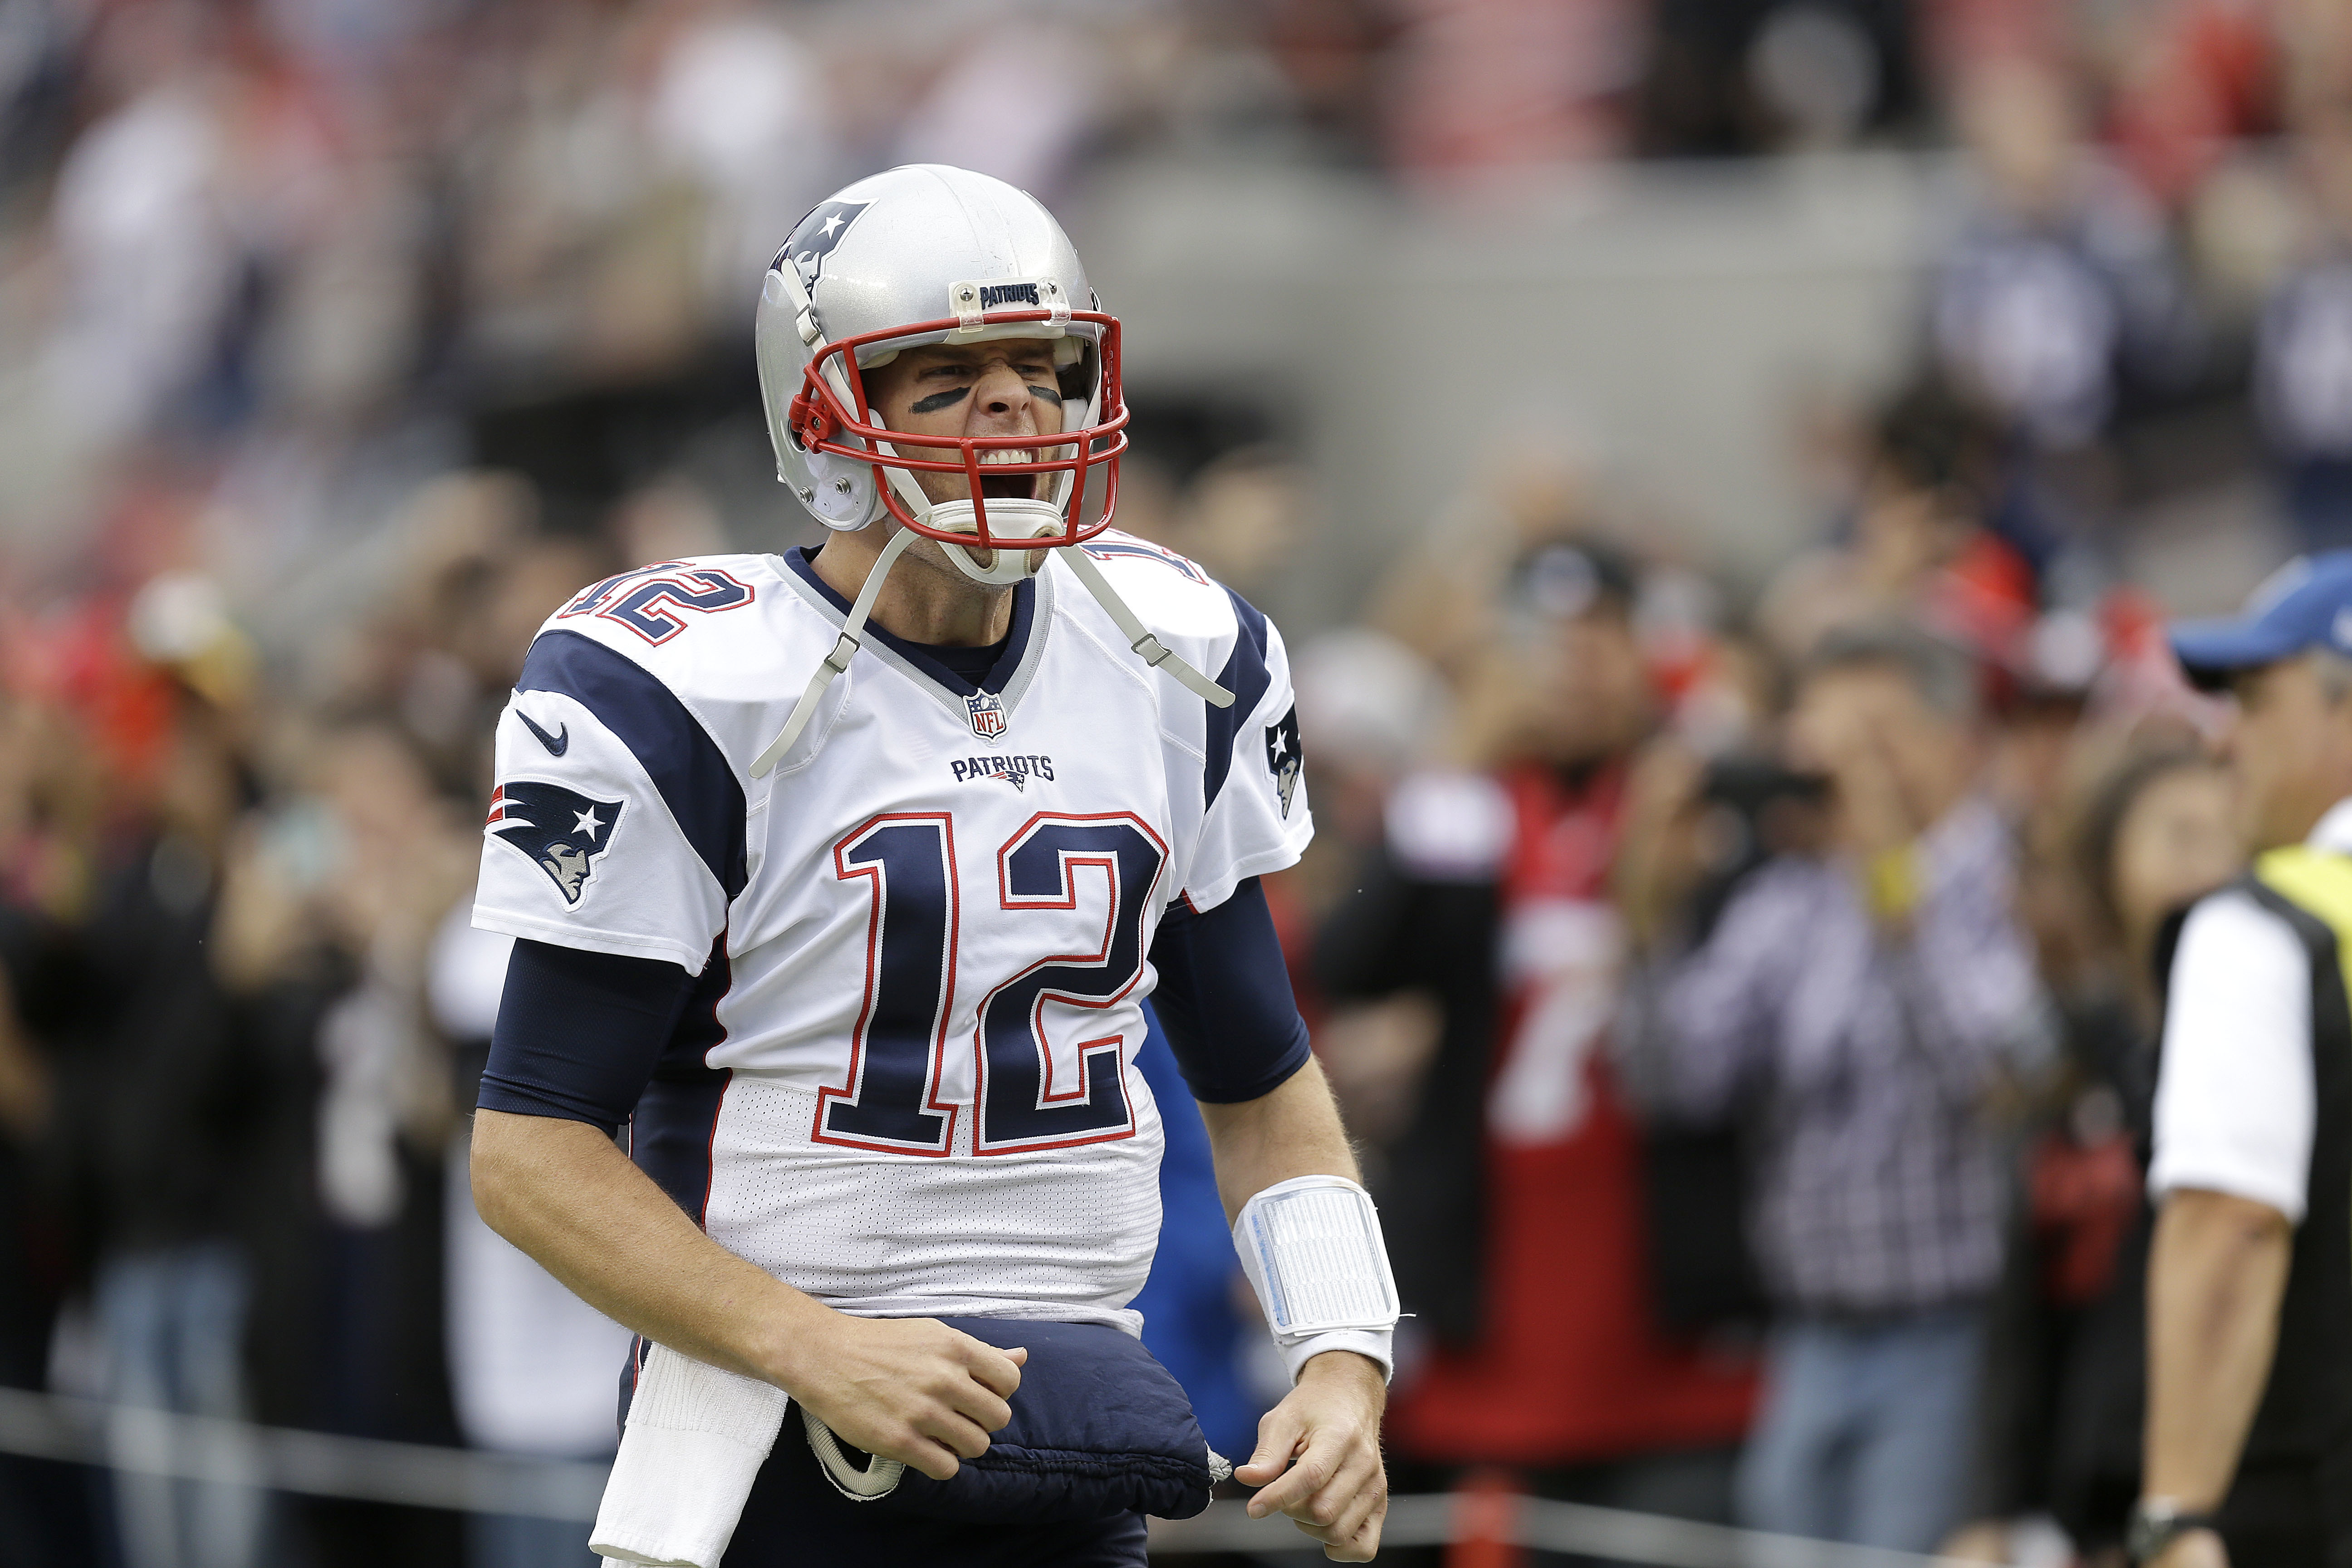 FILE  - In this Sunday, Nov. 20, 2016 file photo, New England Patriots quarterback Tom Brady (12) yells while warming up before an NFL football game against the San Francisco 49ers in Santa Clara, Calif. Brady could achieve a few more milestones this week